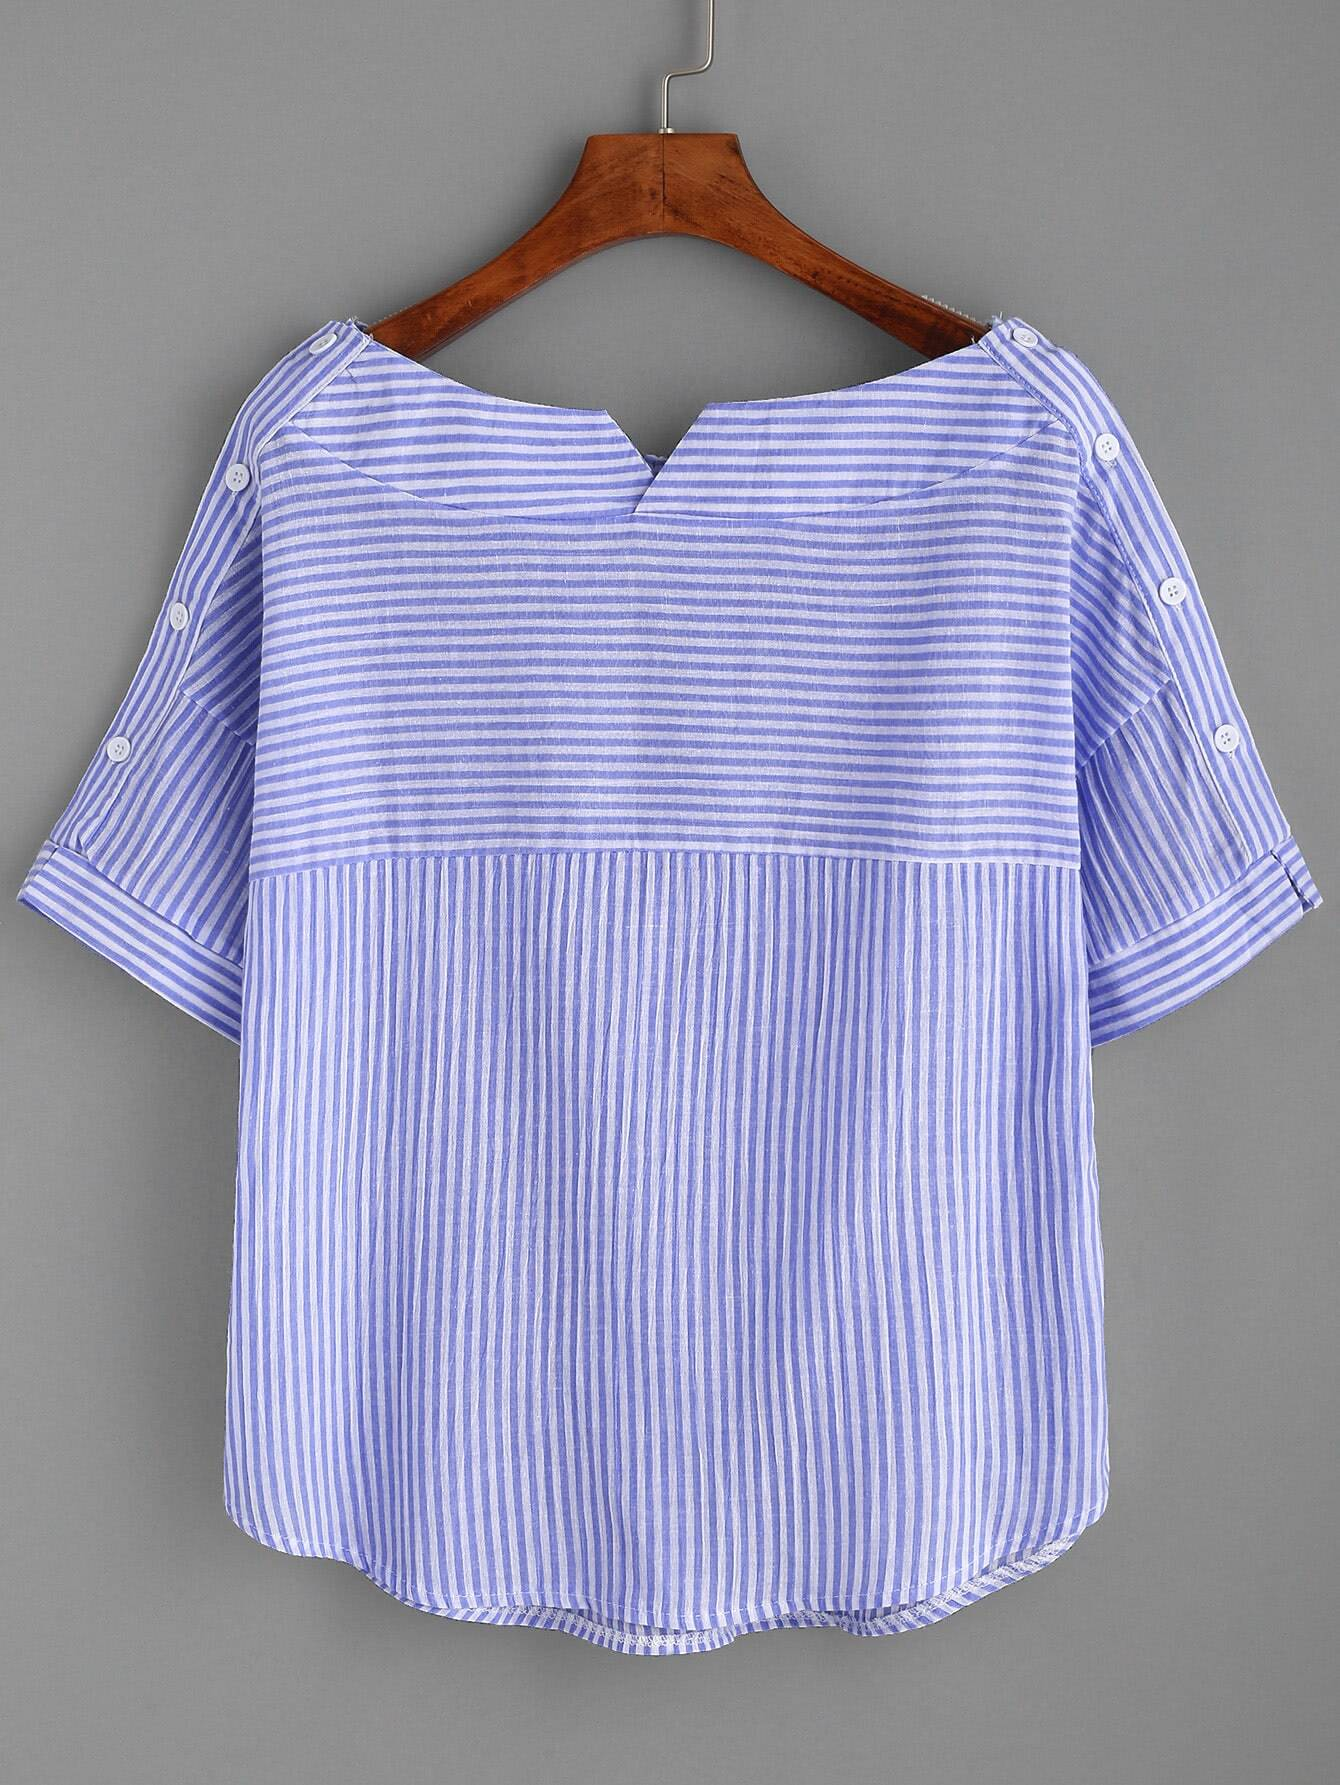 Boat Neckline Striped Blouse With Buttons boat neckline striped blouse with buttons